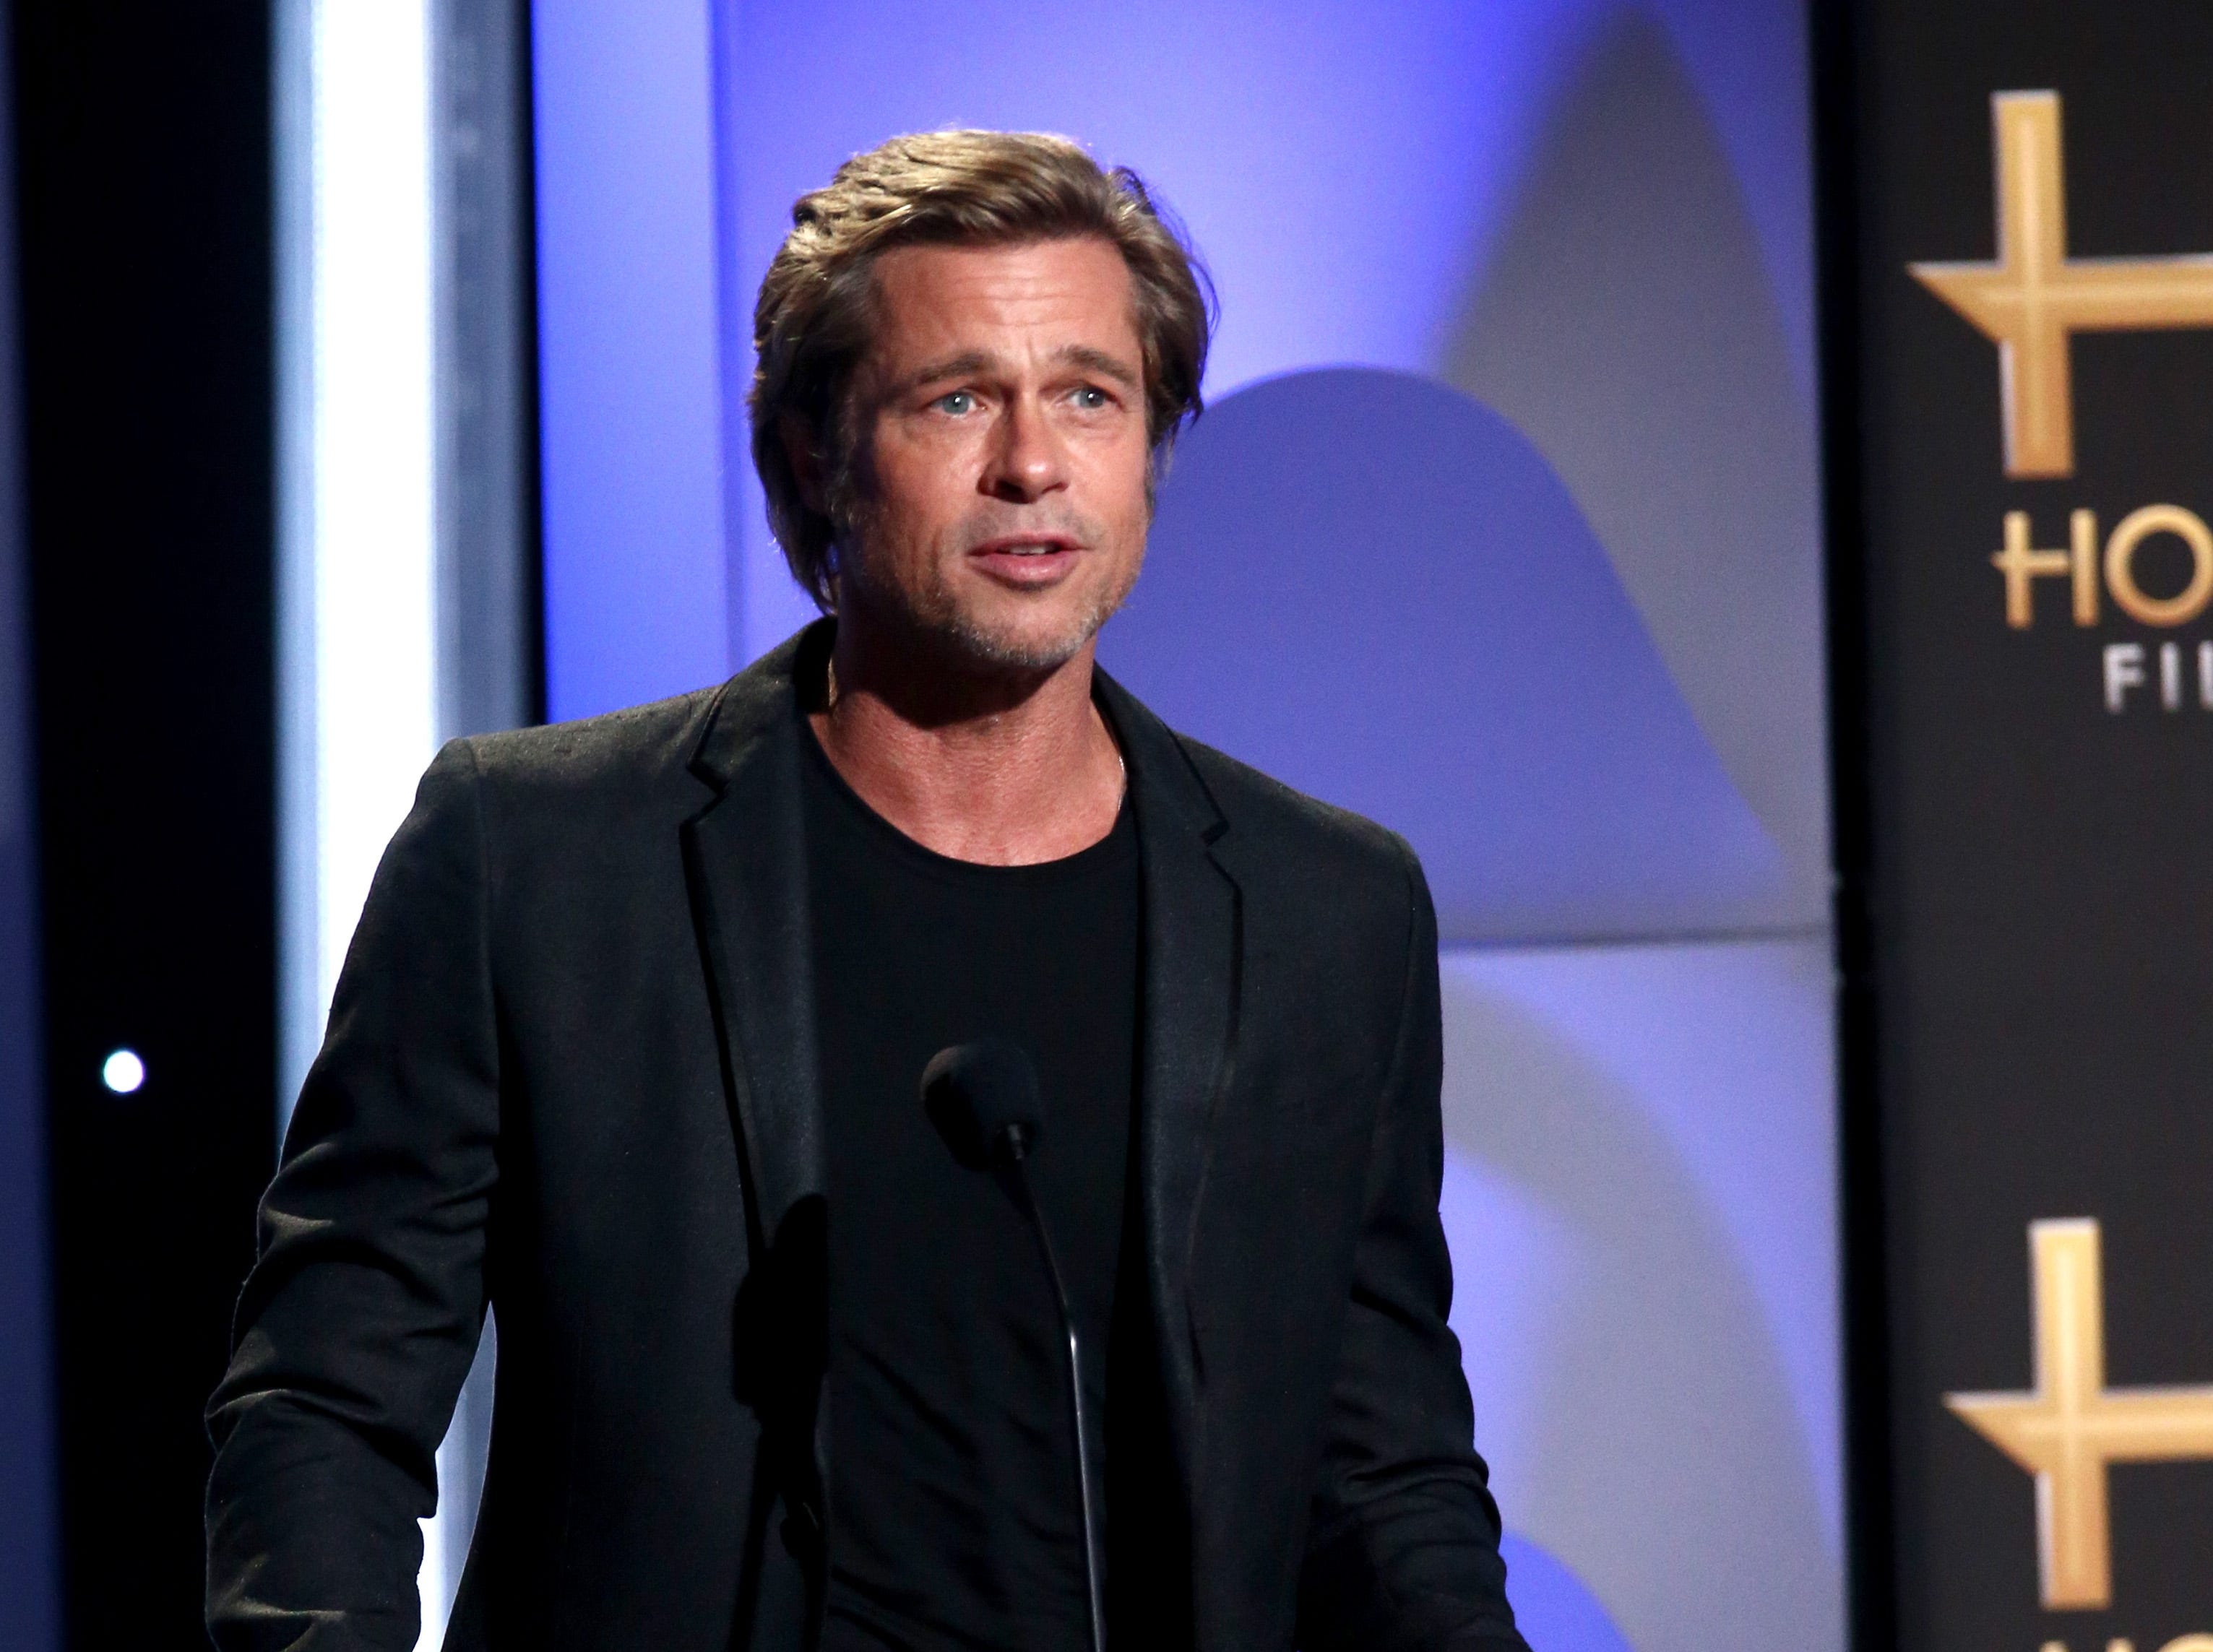 BEVERLY HILLS, CA - NOVEMBER 04:  Brad Pitt speaks onstage during the 22nd Annual Hollywood Film Awards at The Beverly Hilton Hotel on November 4, 2018 in Beverly Hills, California.  (Photo by Tommaso Boddi/Getty Images) ORG XMIT: 775237956 ORIG FILE ID: 1057417418